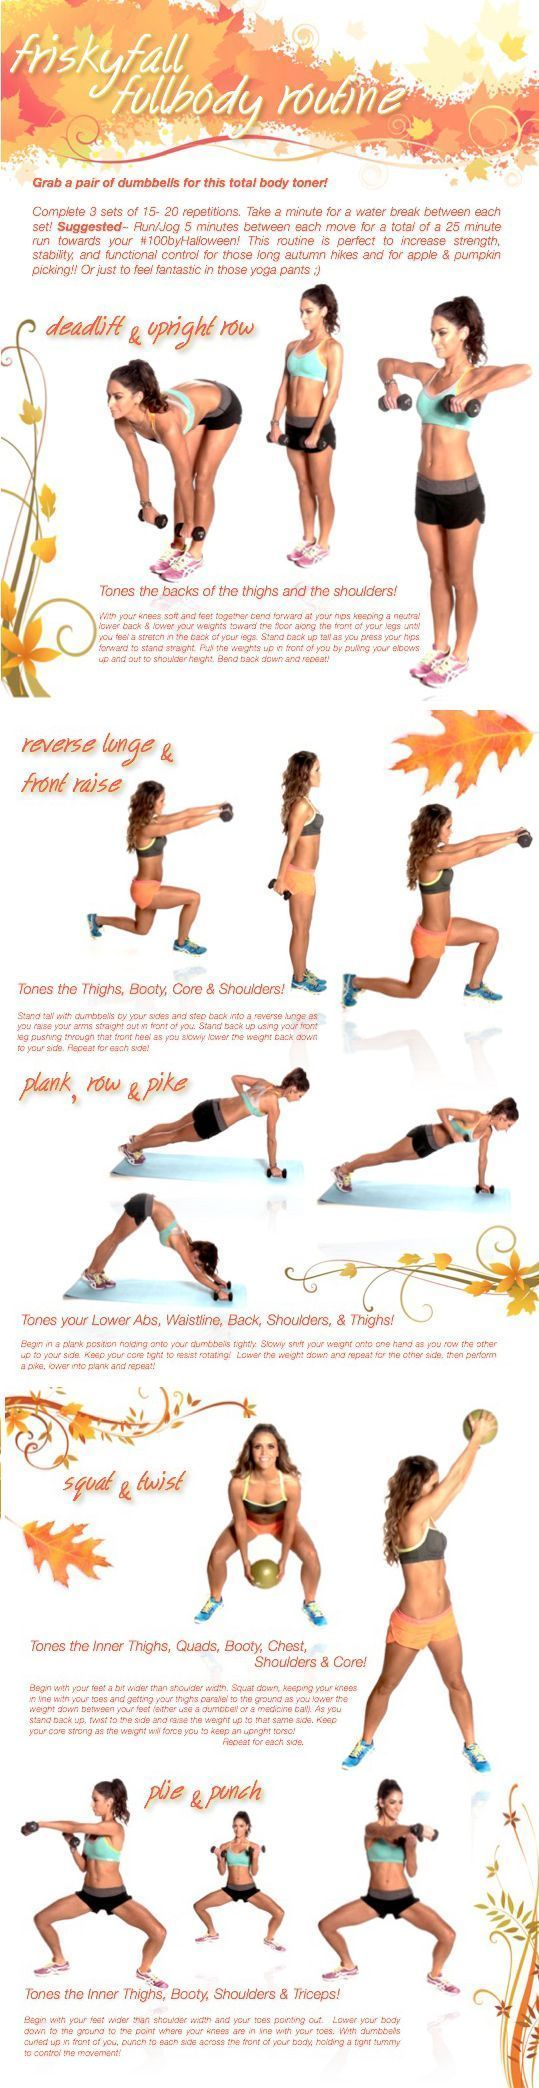 fullbody workout